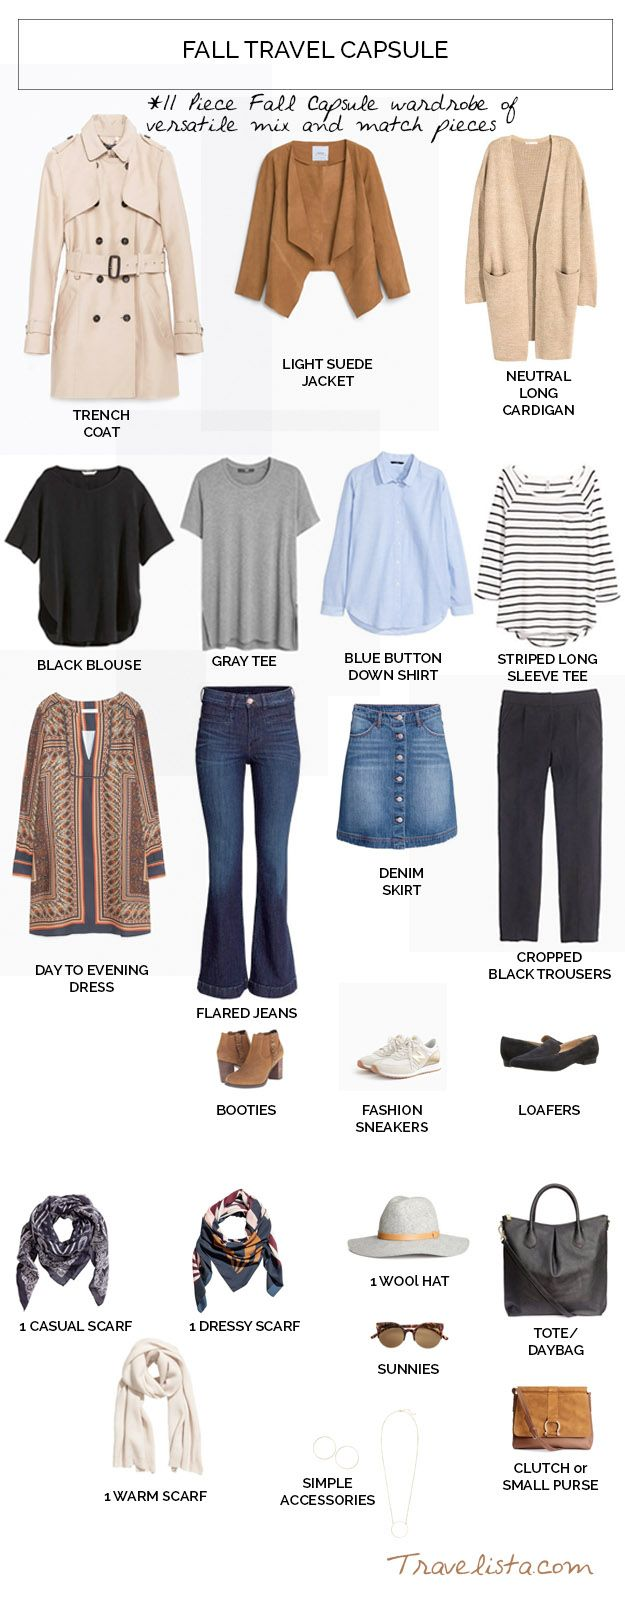 Fall Travel Capsule Wardrobe